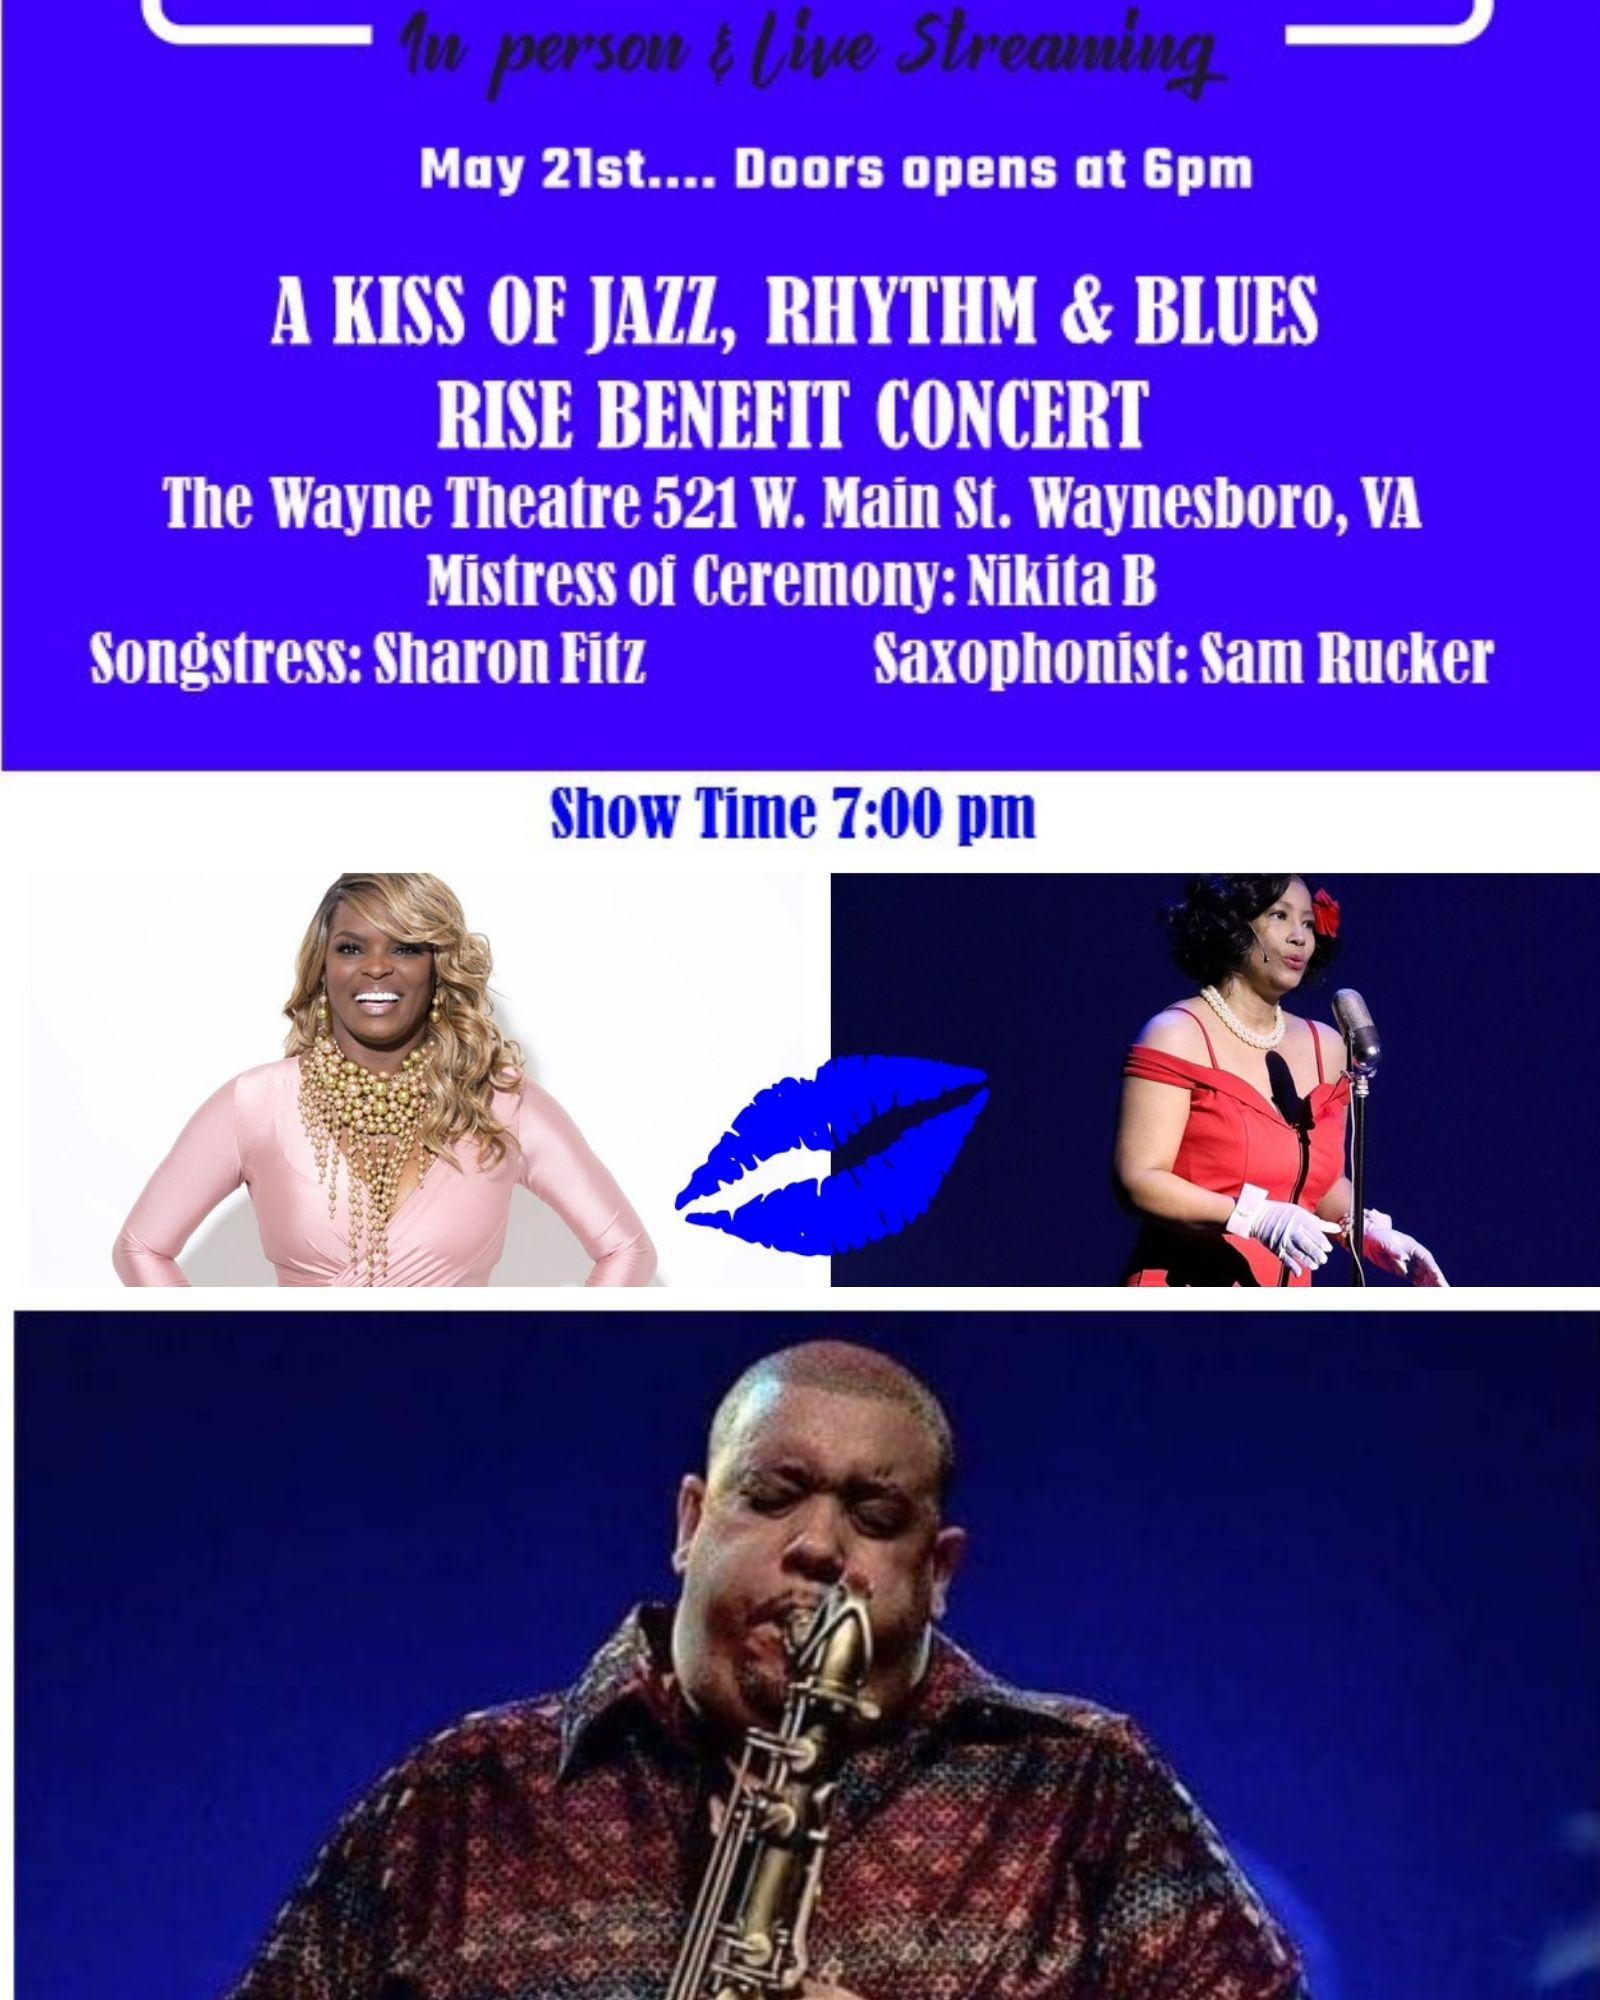 A Kiss of Jazz, Rhythm & Blues - RISE Benefit Concert